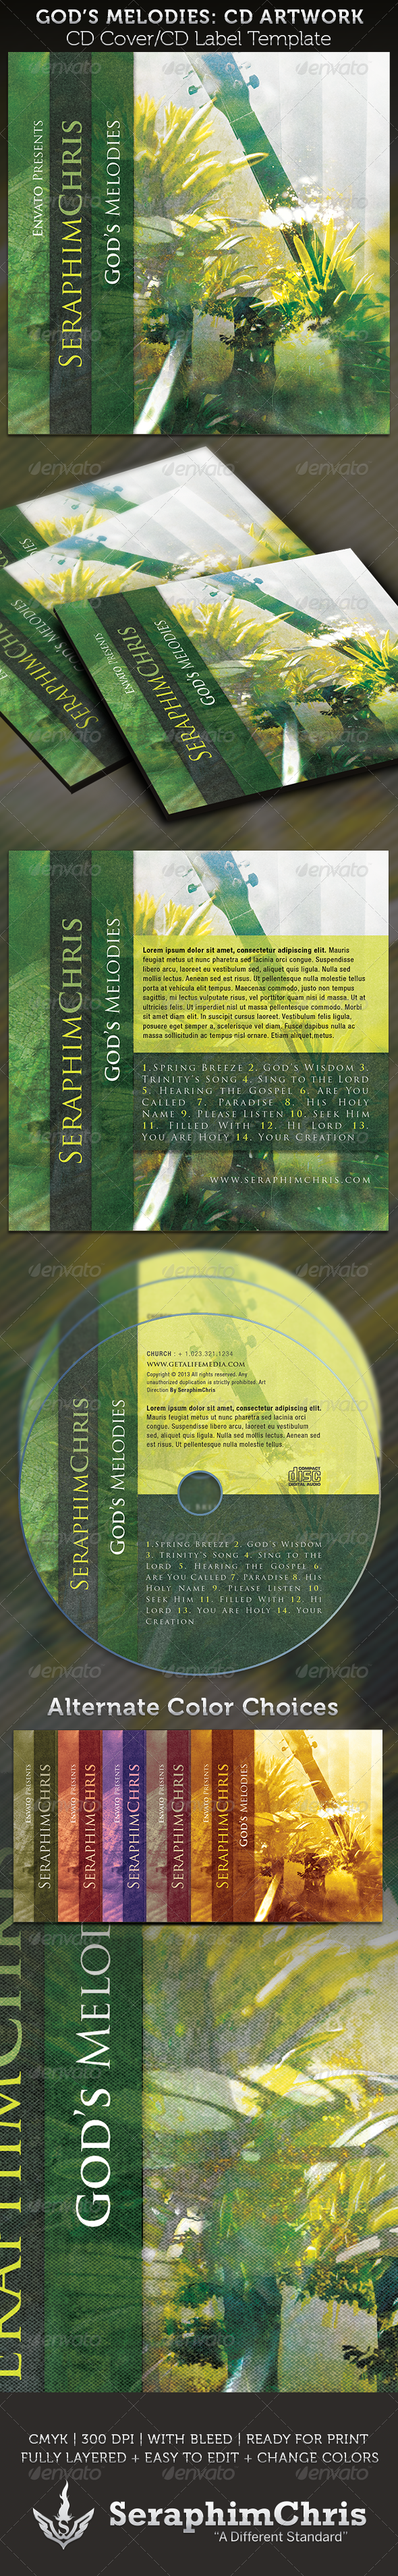 God's Melodies CD Cover Artwork Template - CD & DVD artwork Print Templates